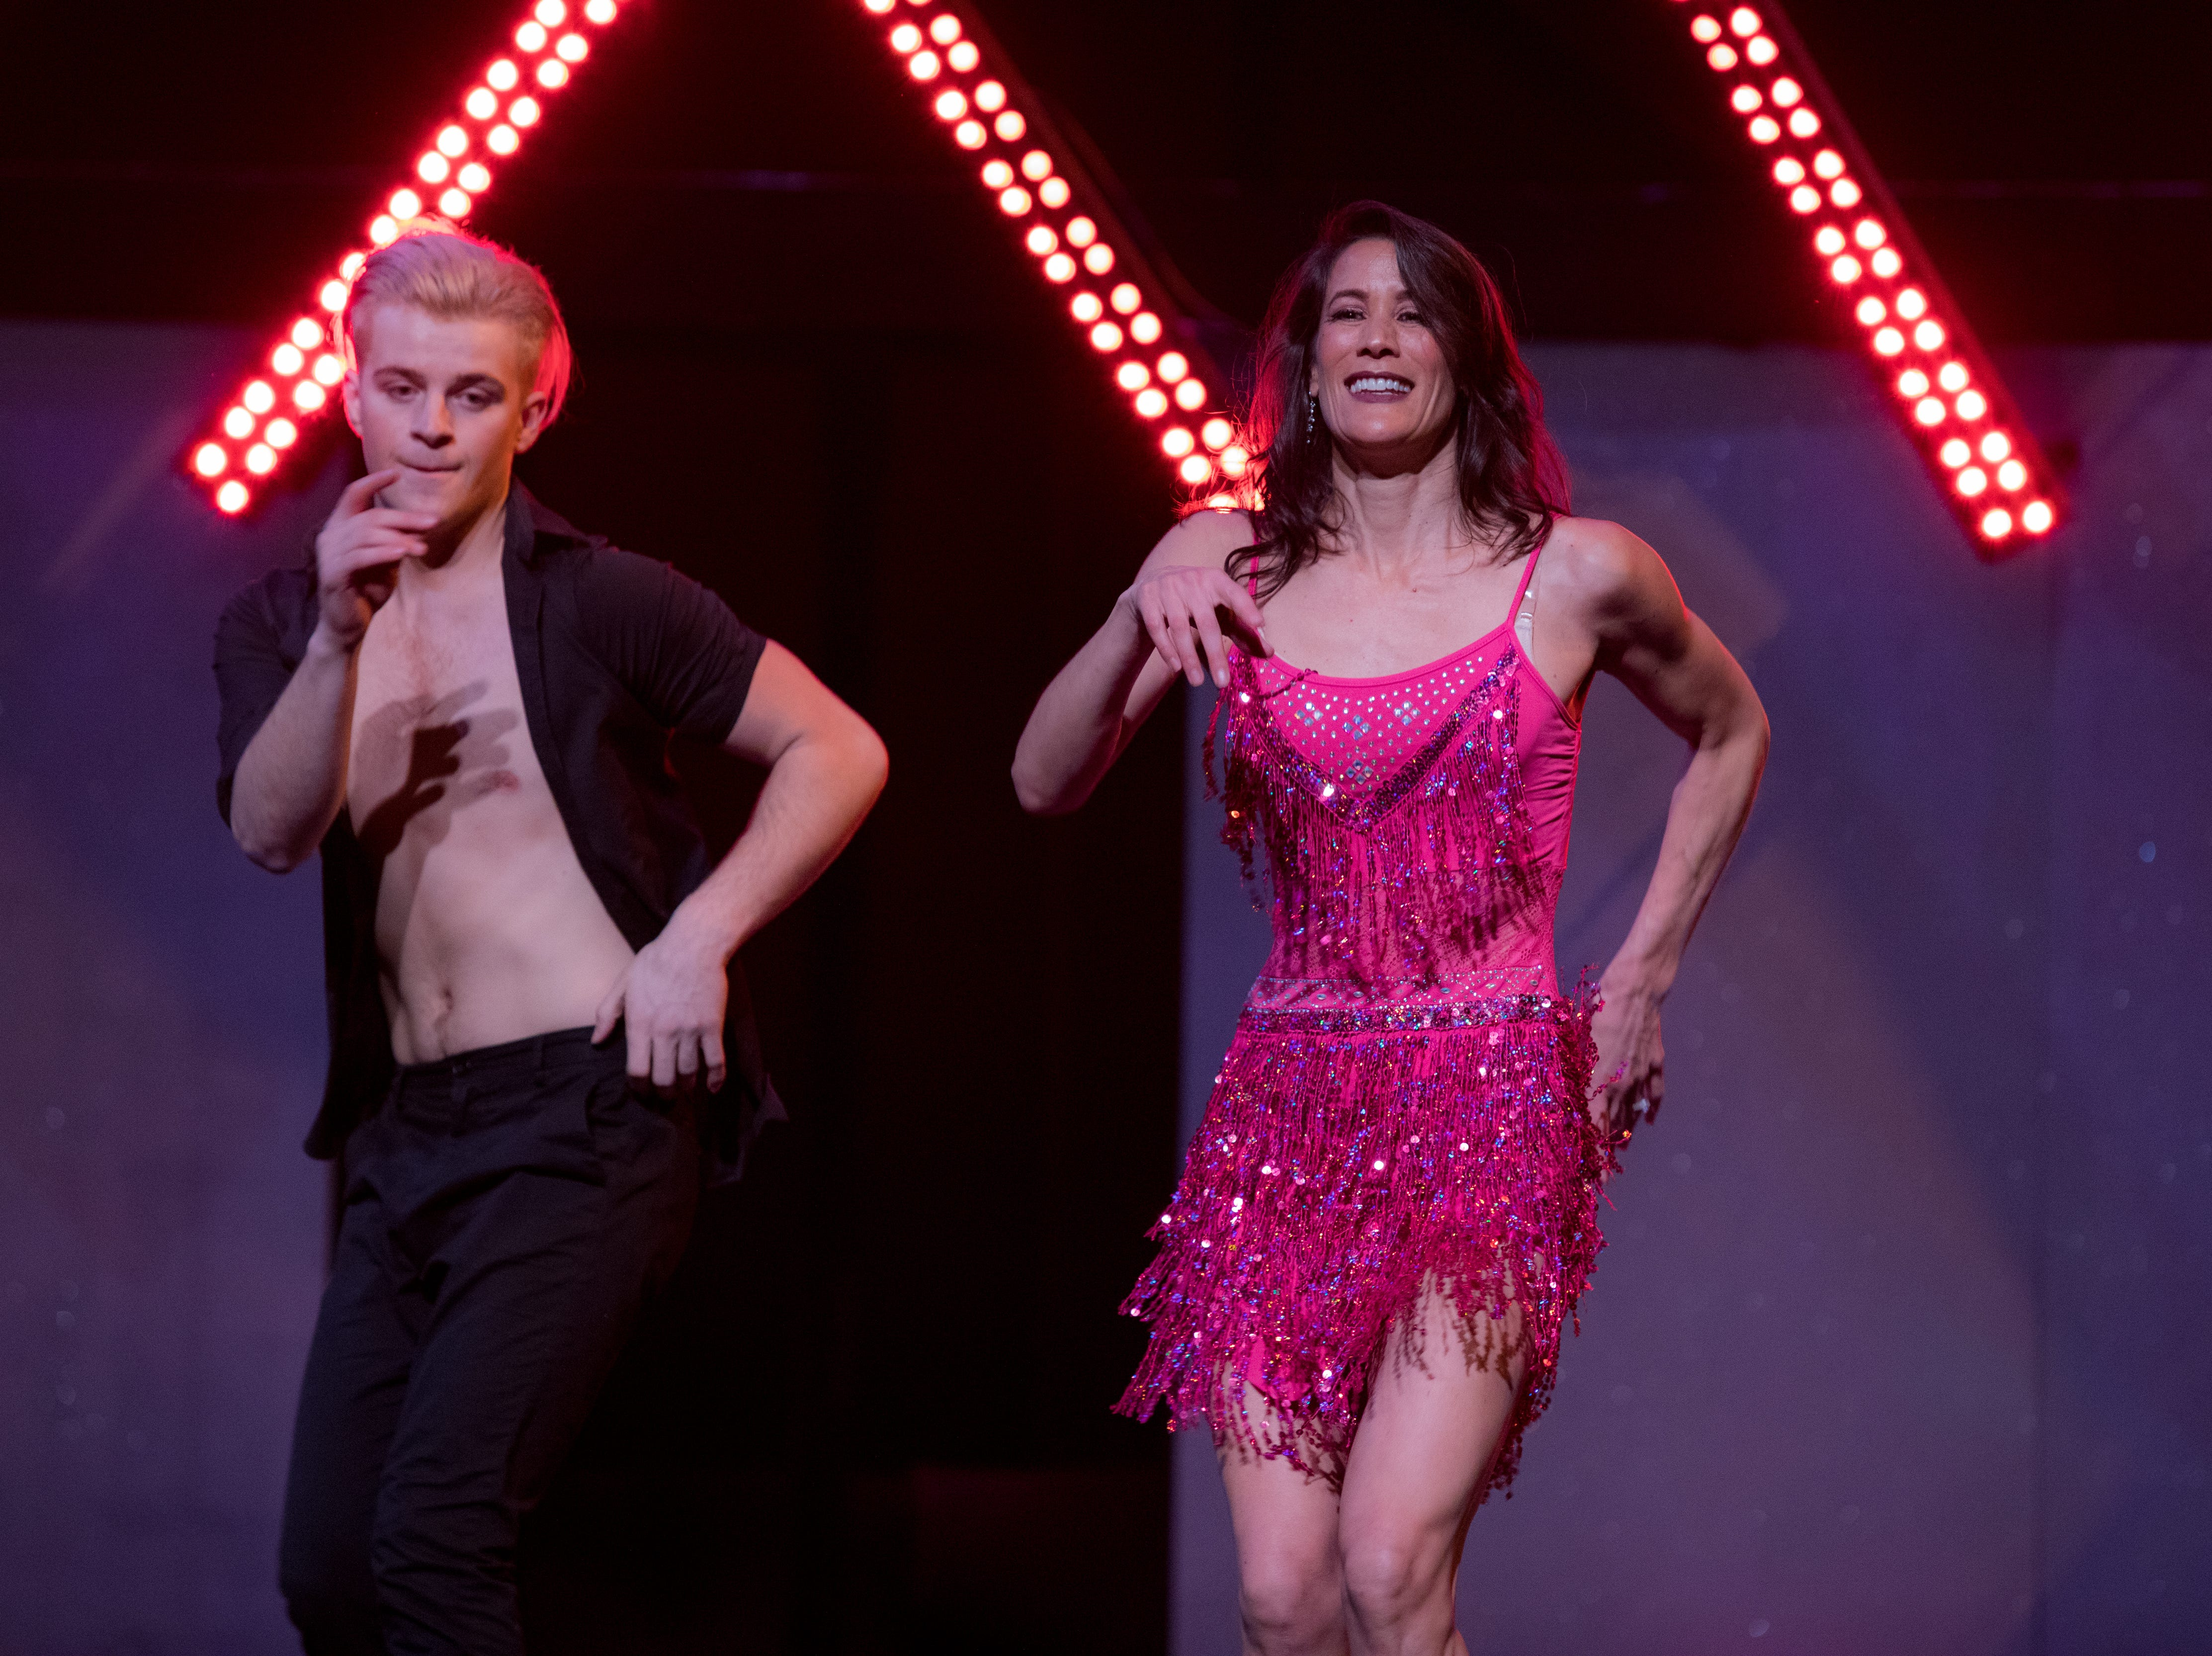 Leah Wong Ashburn, Highland Brewery, with dance partner Travis Stancil, dancing to Dirty Dancing theme song.  At this year's Dancing With The Local Stars at Diane Wortham Theater, February 24th, 2019.  The event raised over 50,000 for ACS.